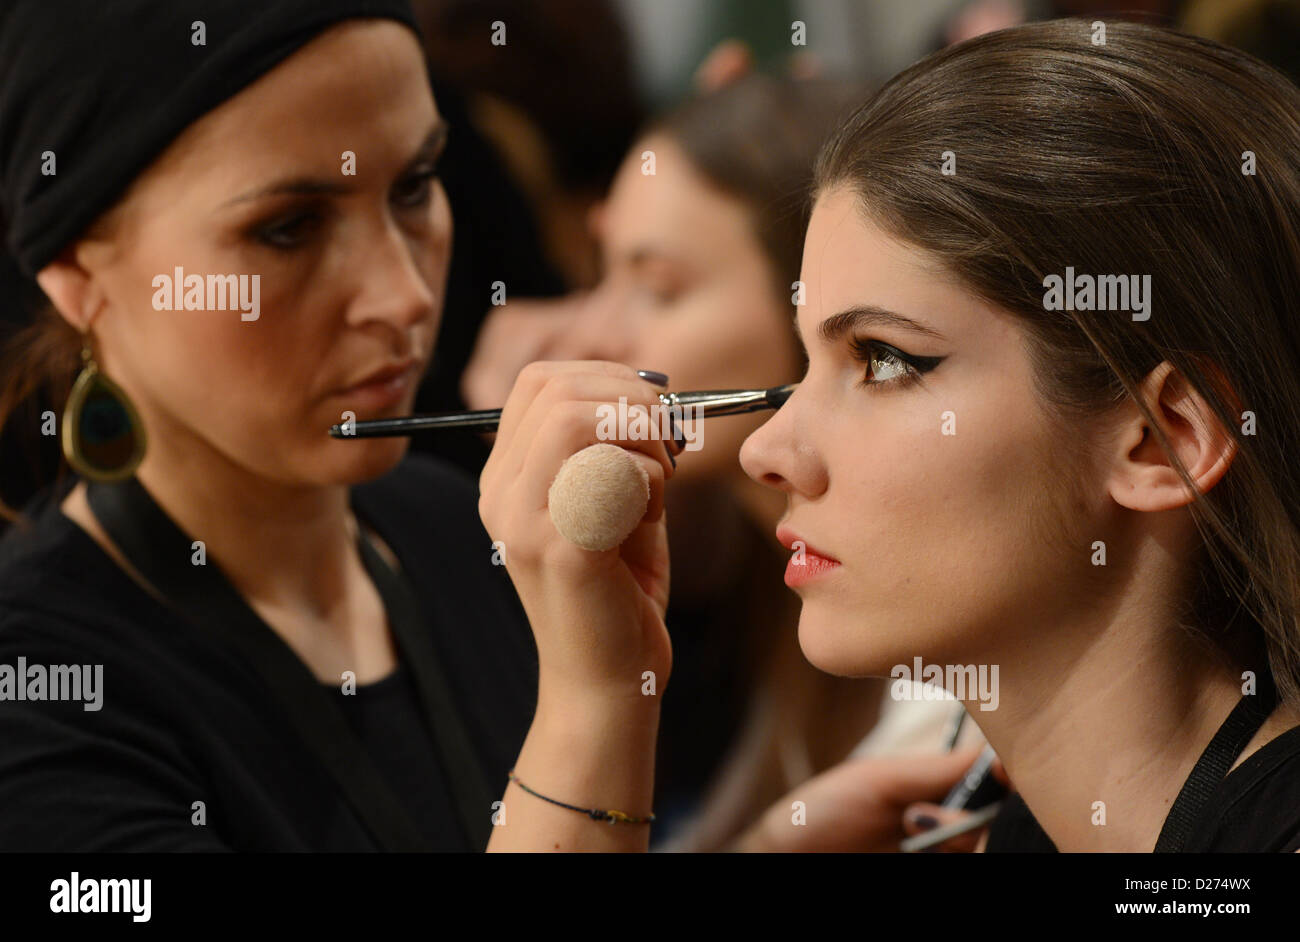 Models backstage at the Lena Hoschek show during the Mercedes-Benz Fashion Week in Berlin, Germany, 15 January 2013. - Stock Image